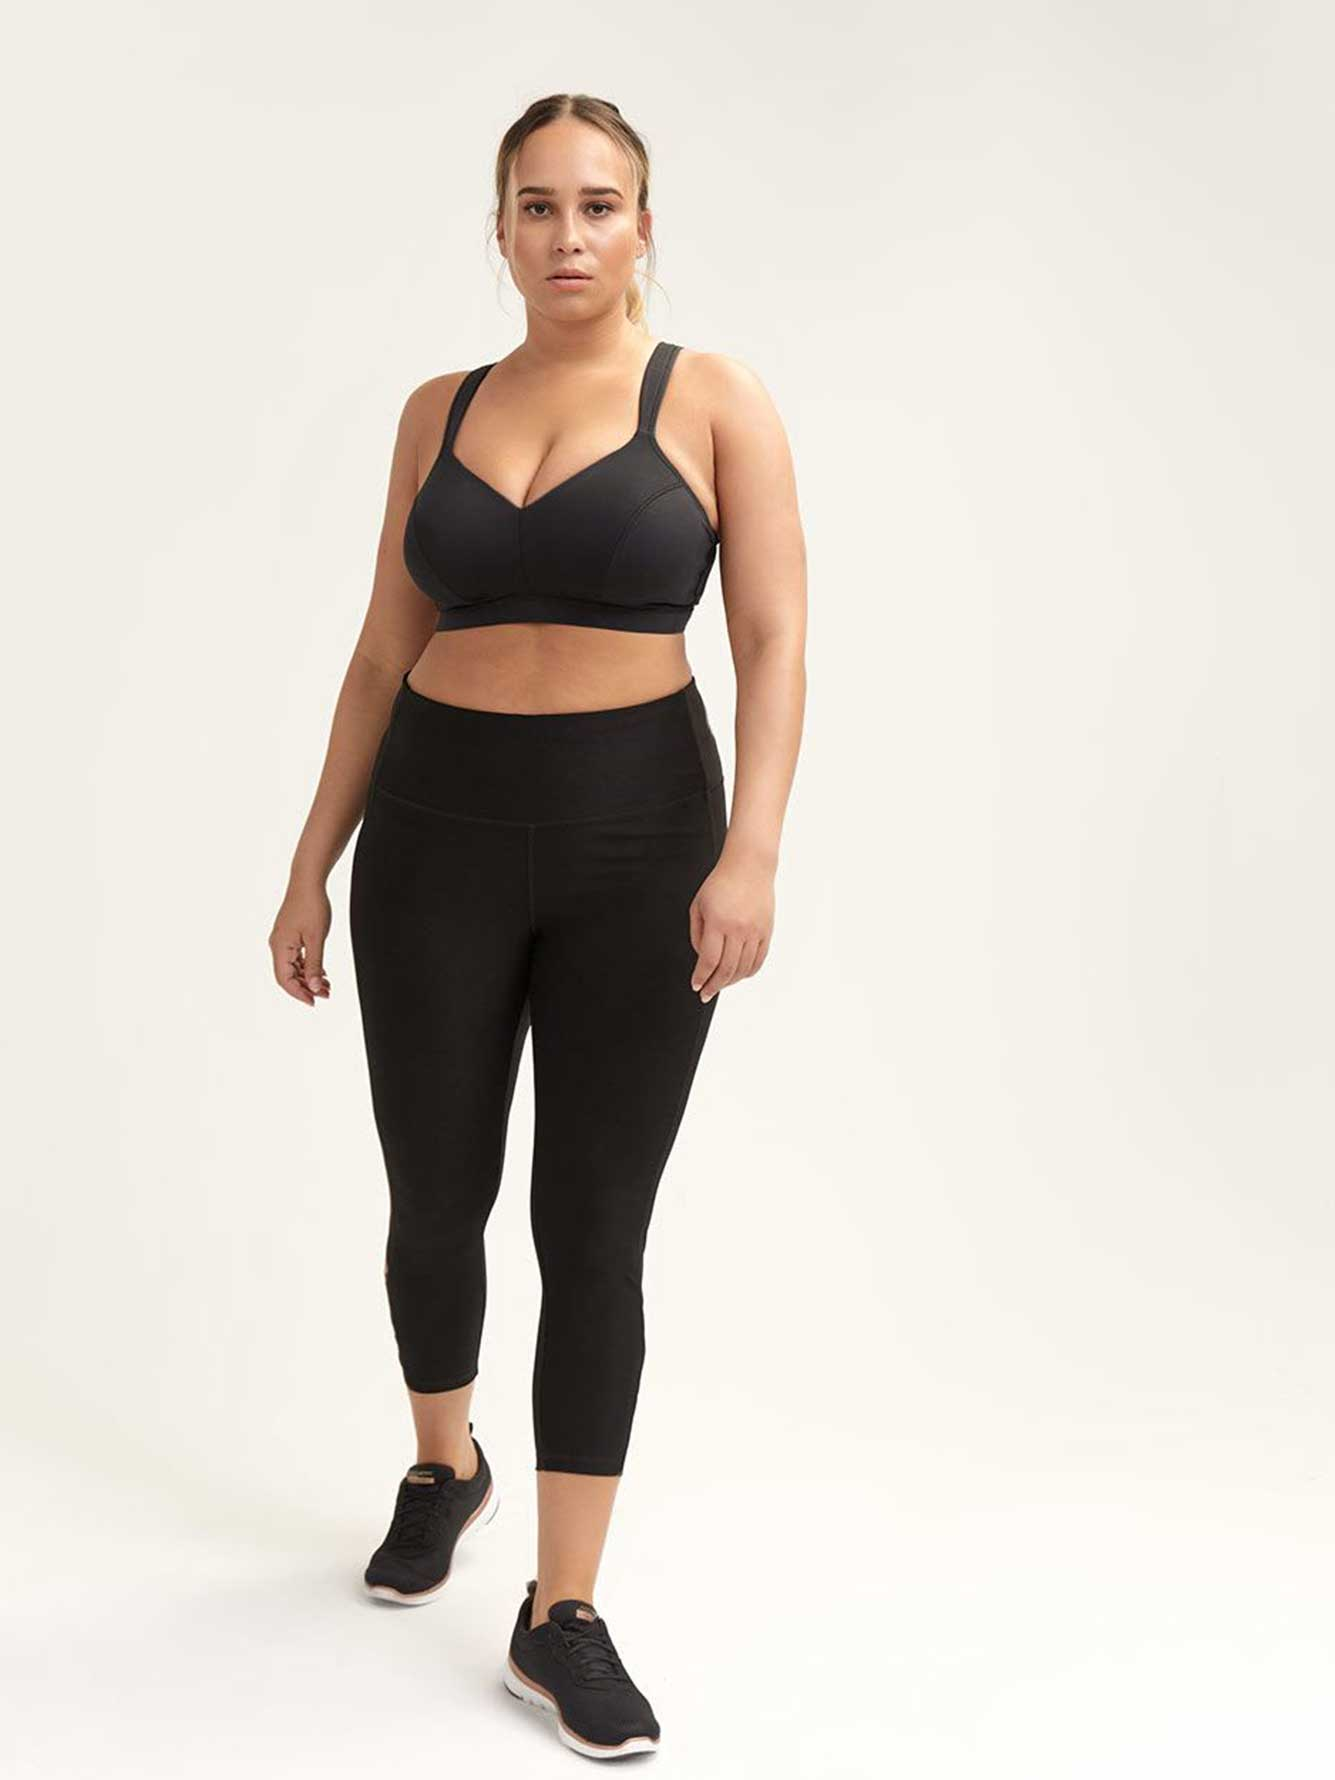 Black Legging with Mesh Inserts - Nola